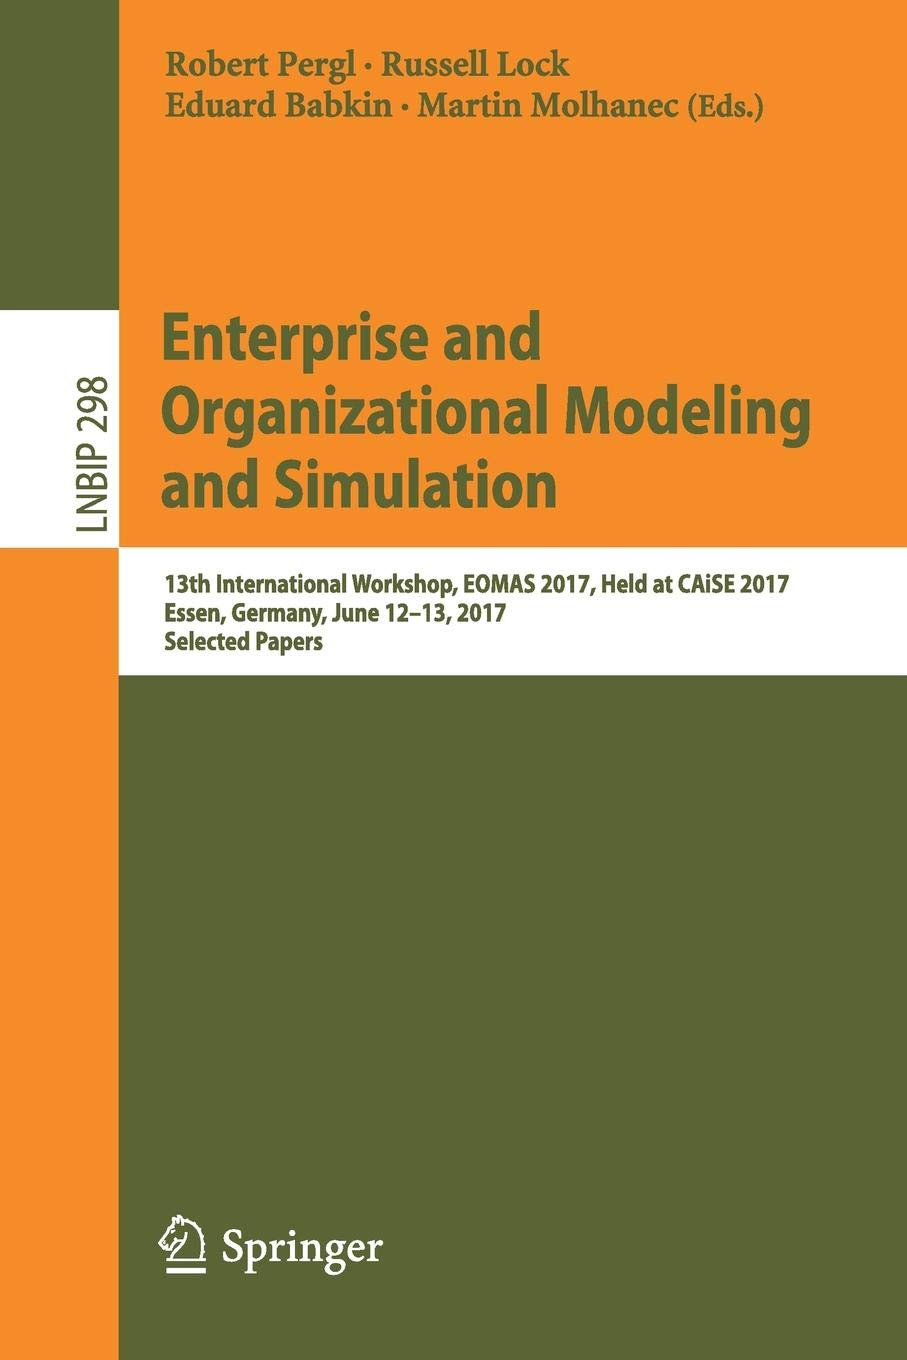 Enterprise and Organizational Modeling and